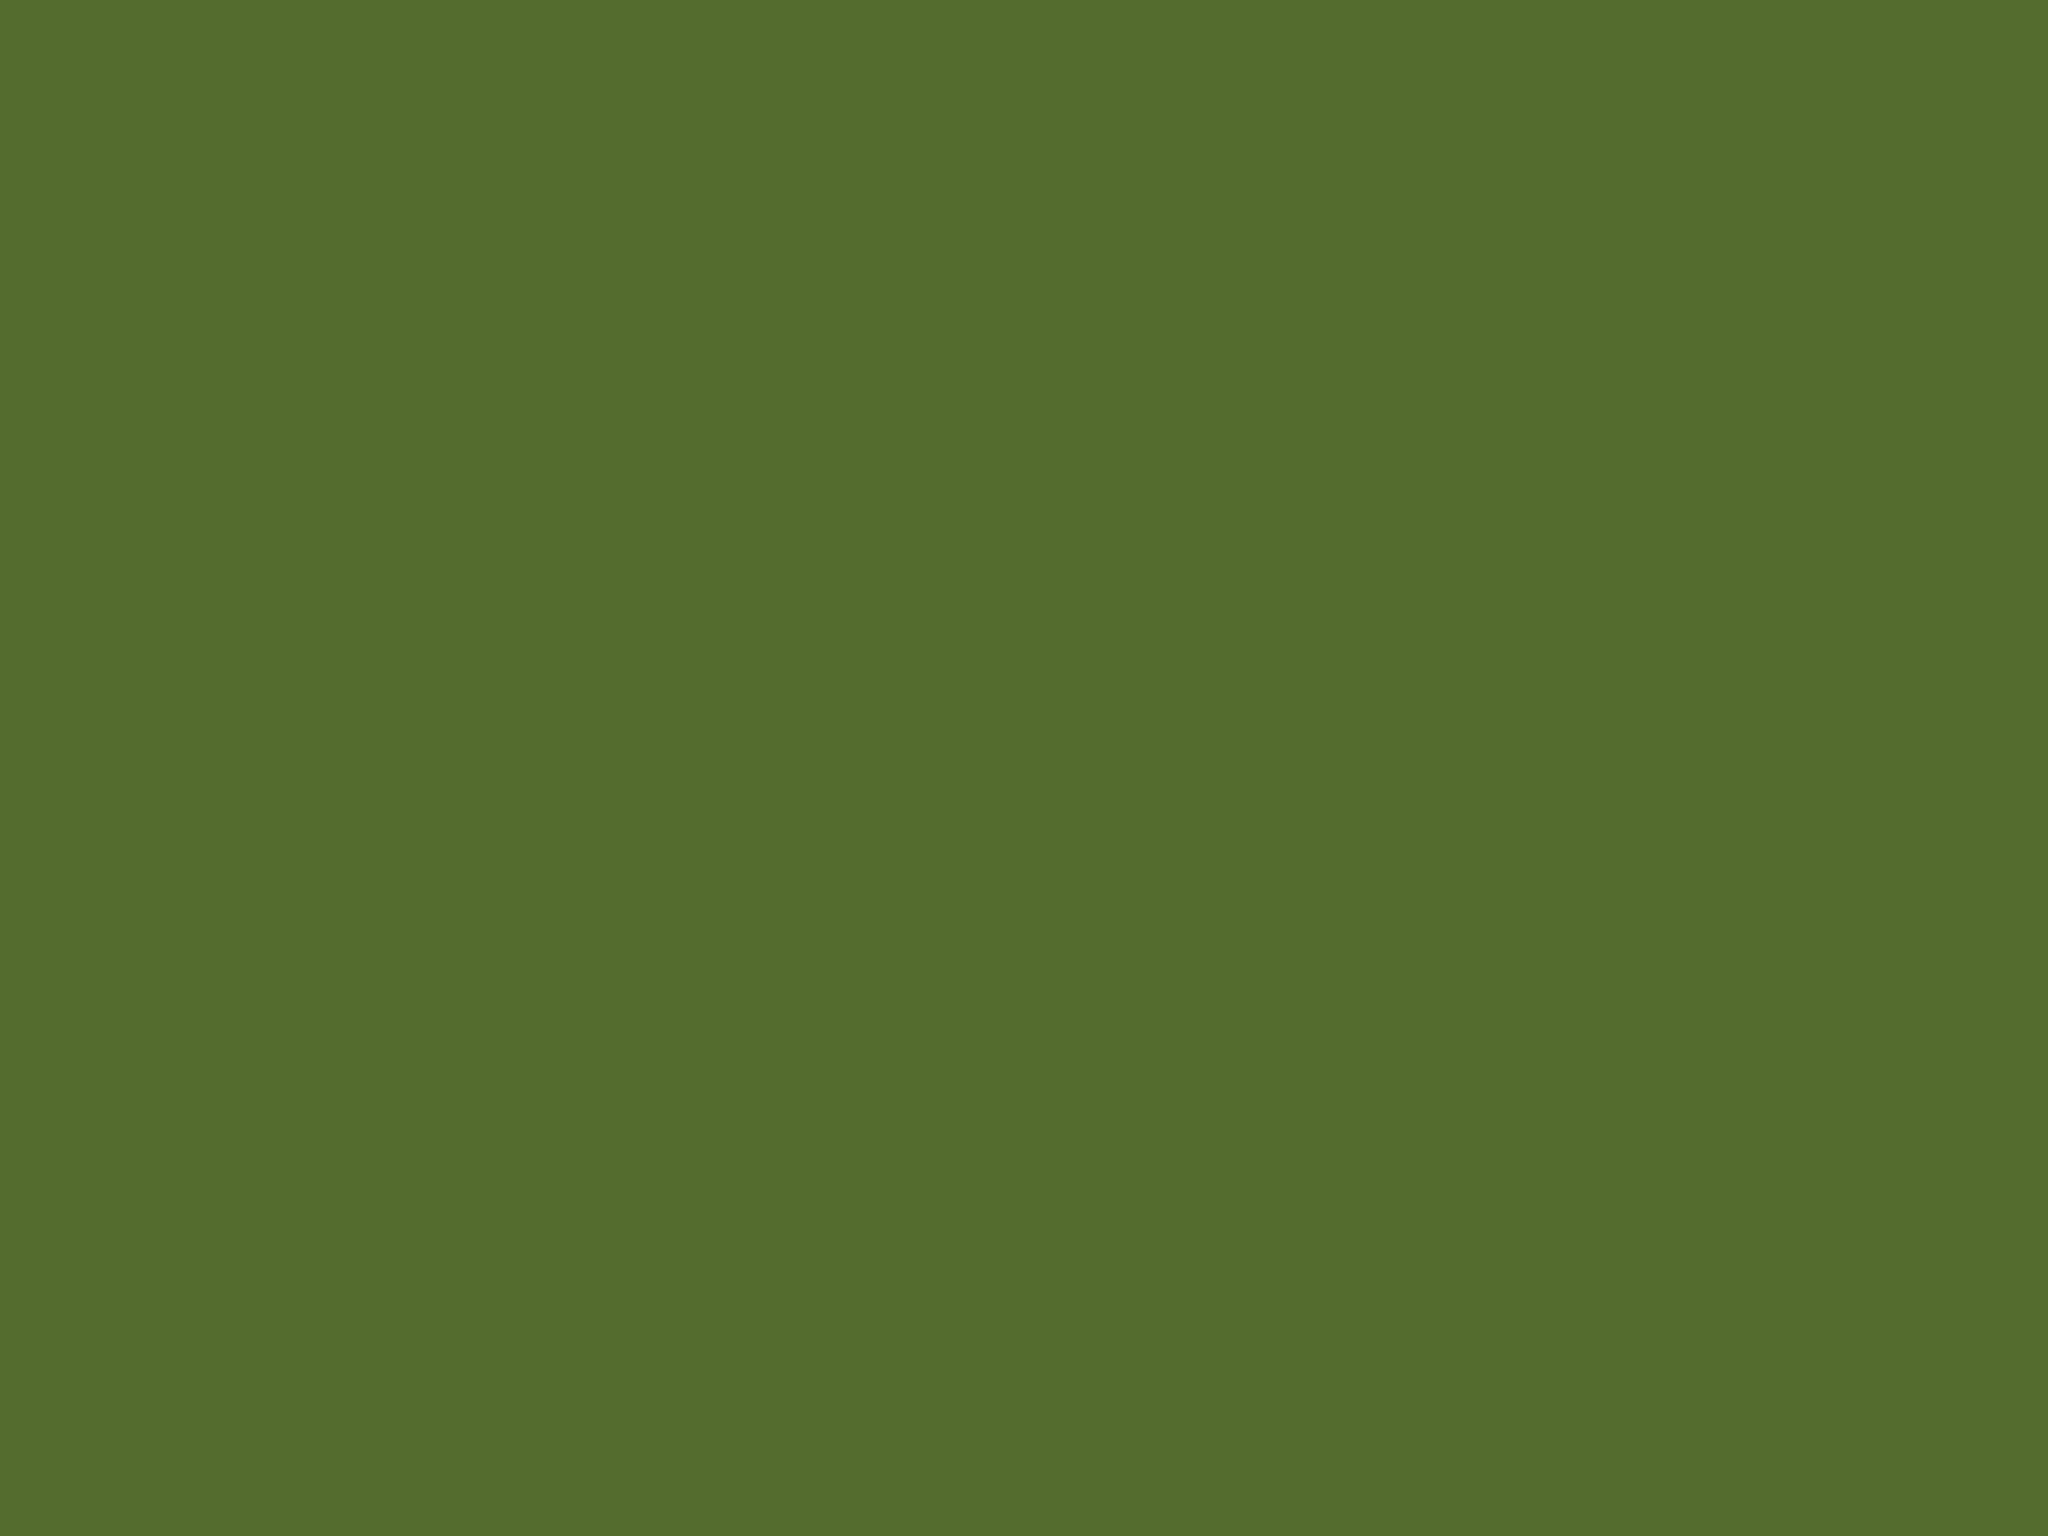 2048x1536 Dark Olive Green Solid Color Background